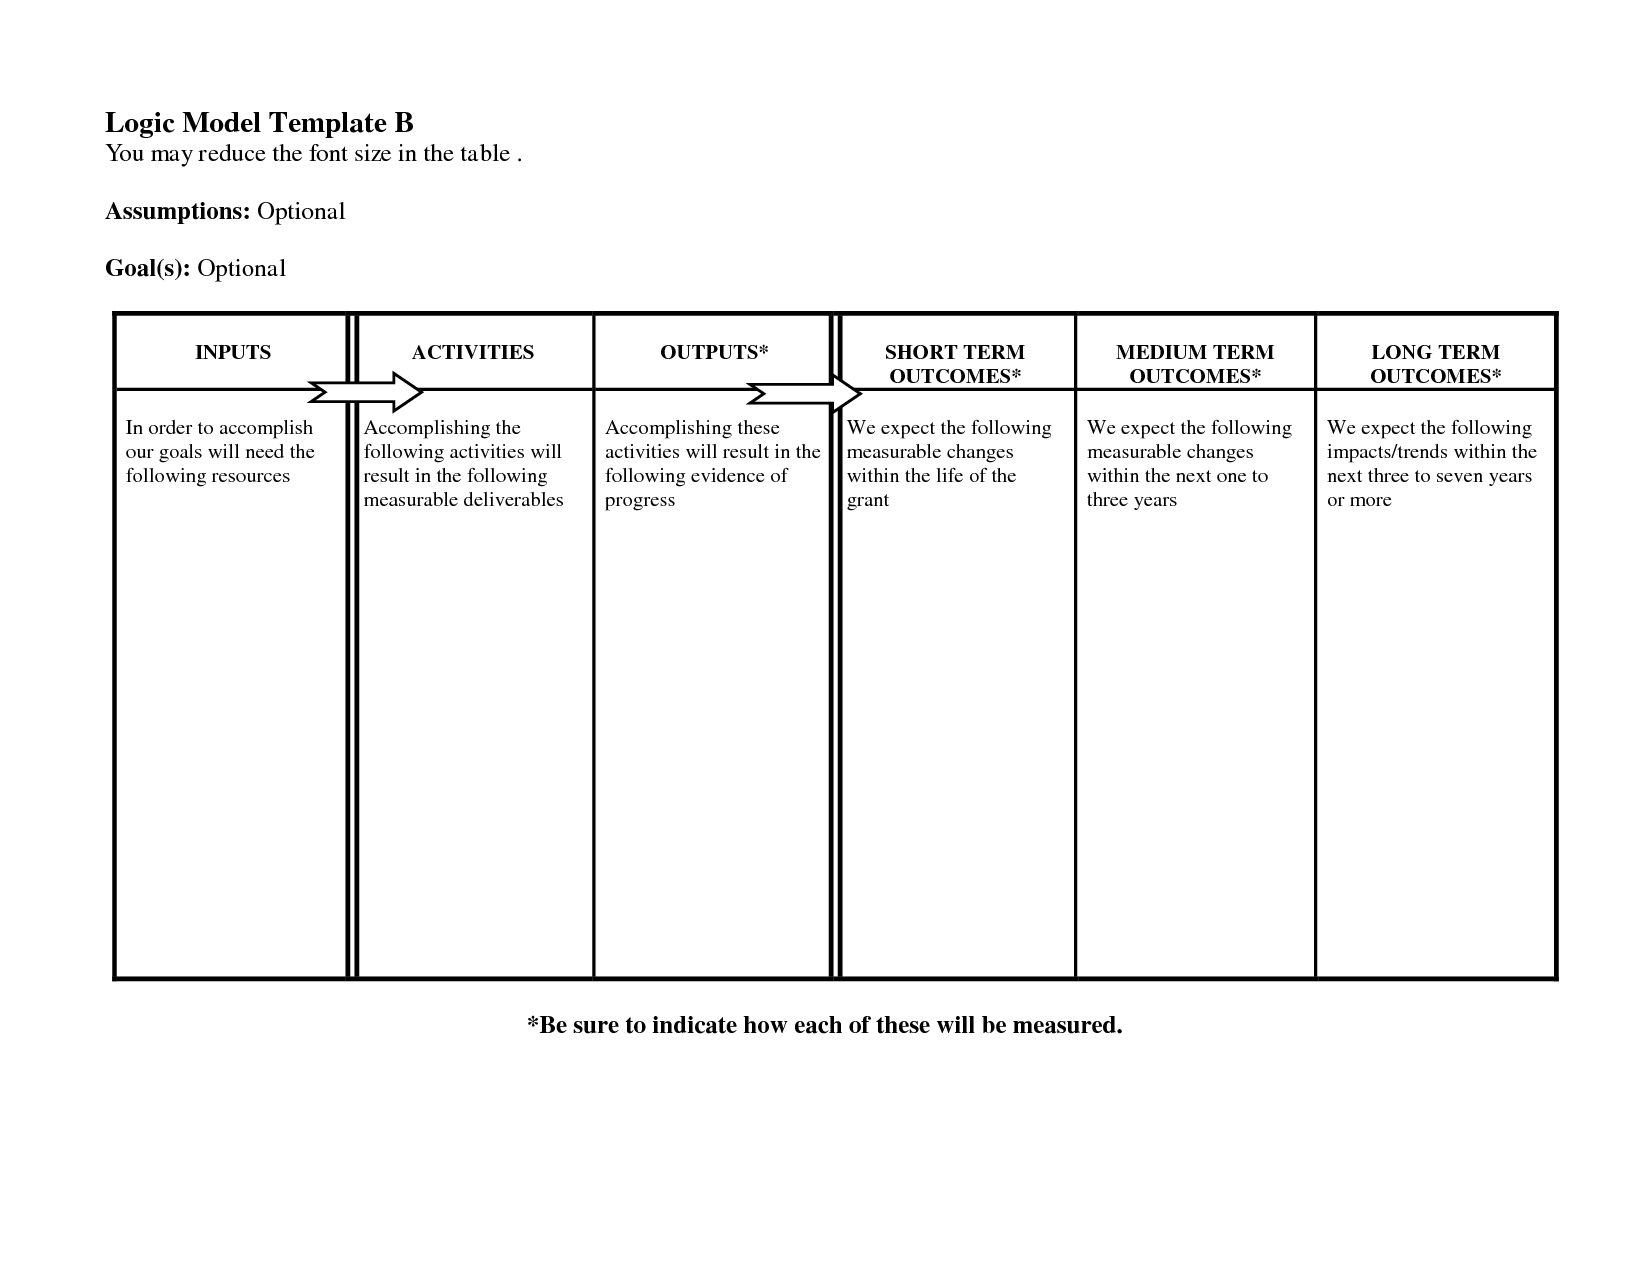 Logic Model Template | E Commercewordpress Within Logic Model Template Microsoft Word